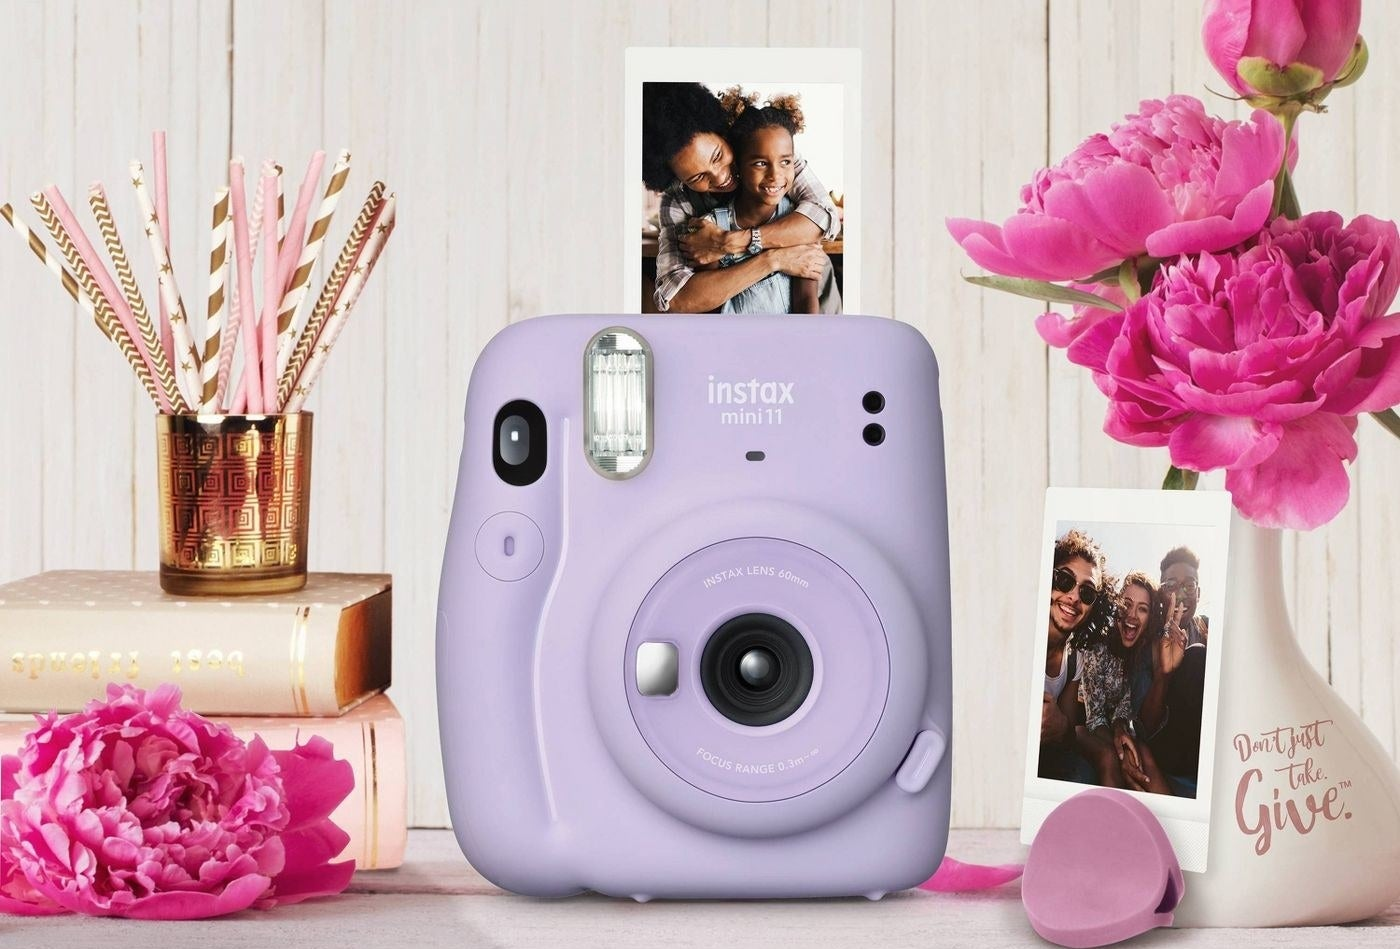 The Fuji Instax Mini in purple surrounded by pictures it has taken